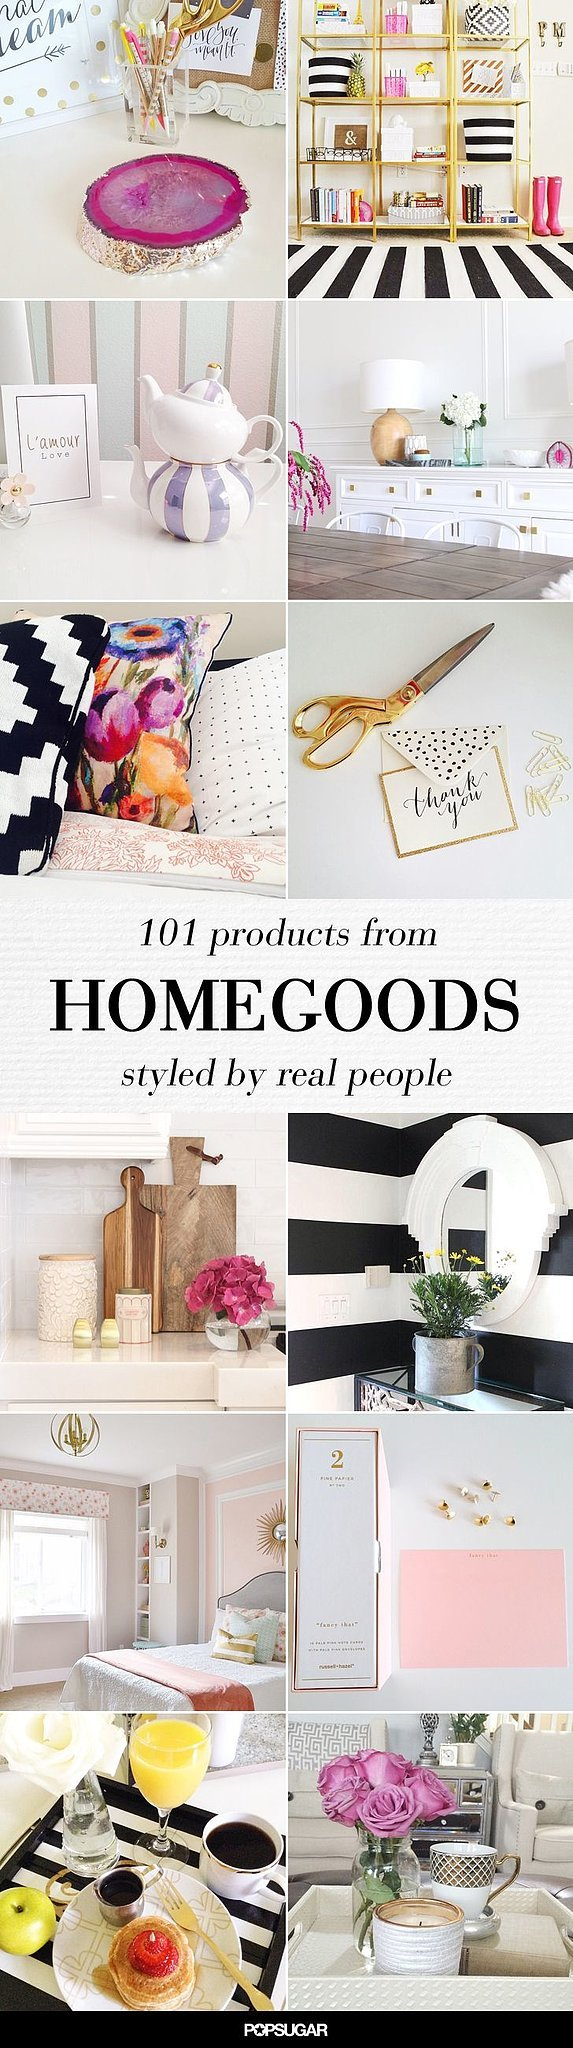 Amazing homegoods pieces 10 home decor ideas you 39 ll want to pin immediately popsugar home Home decor home goods